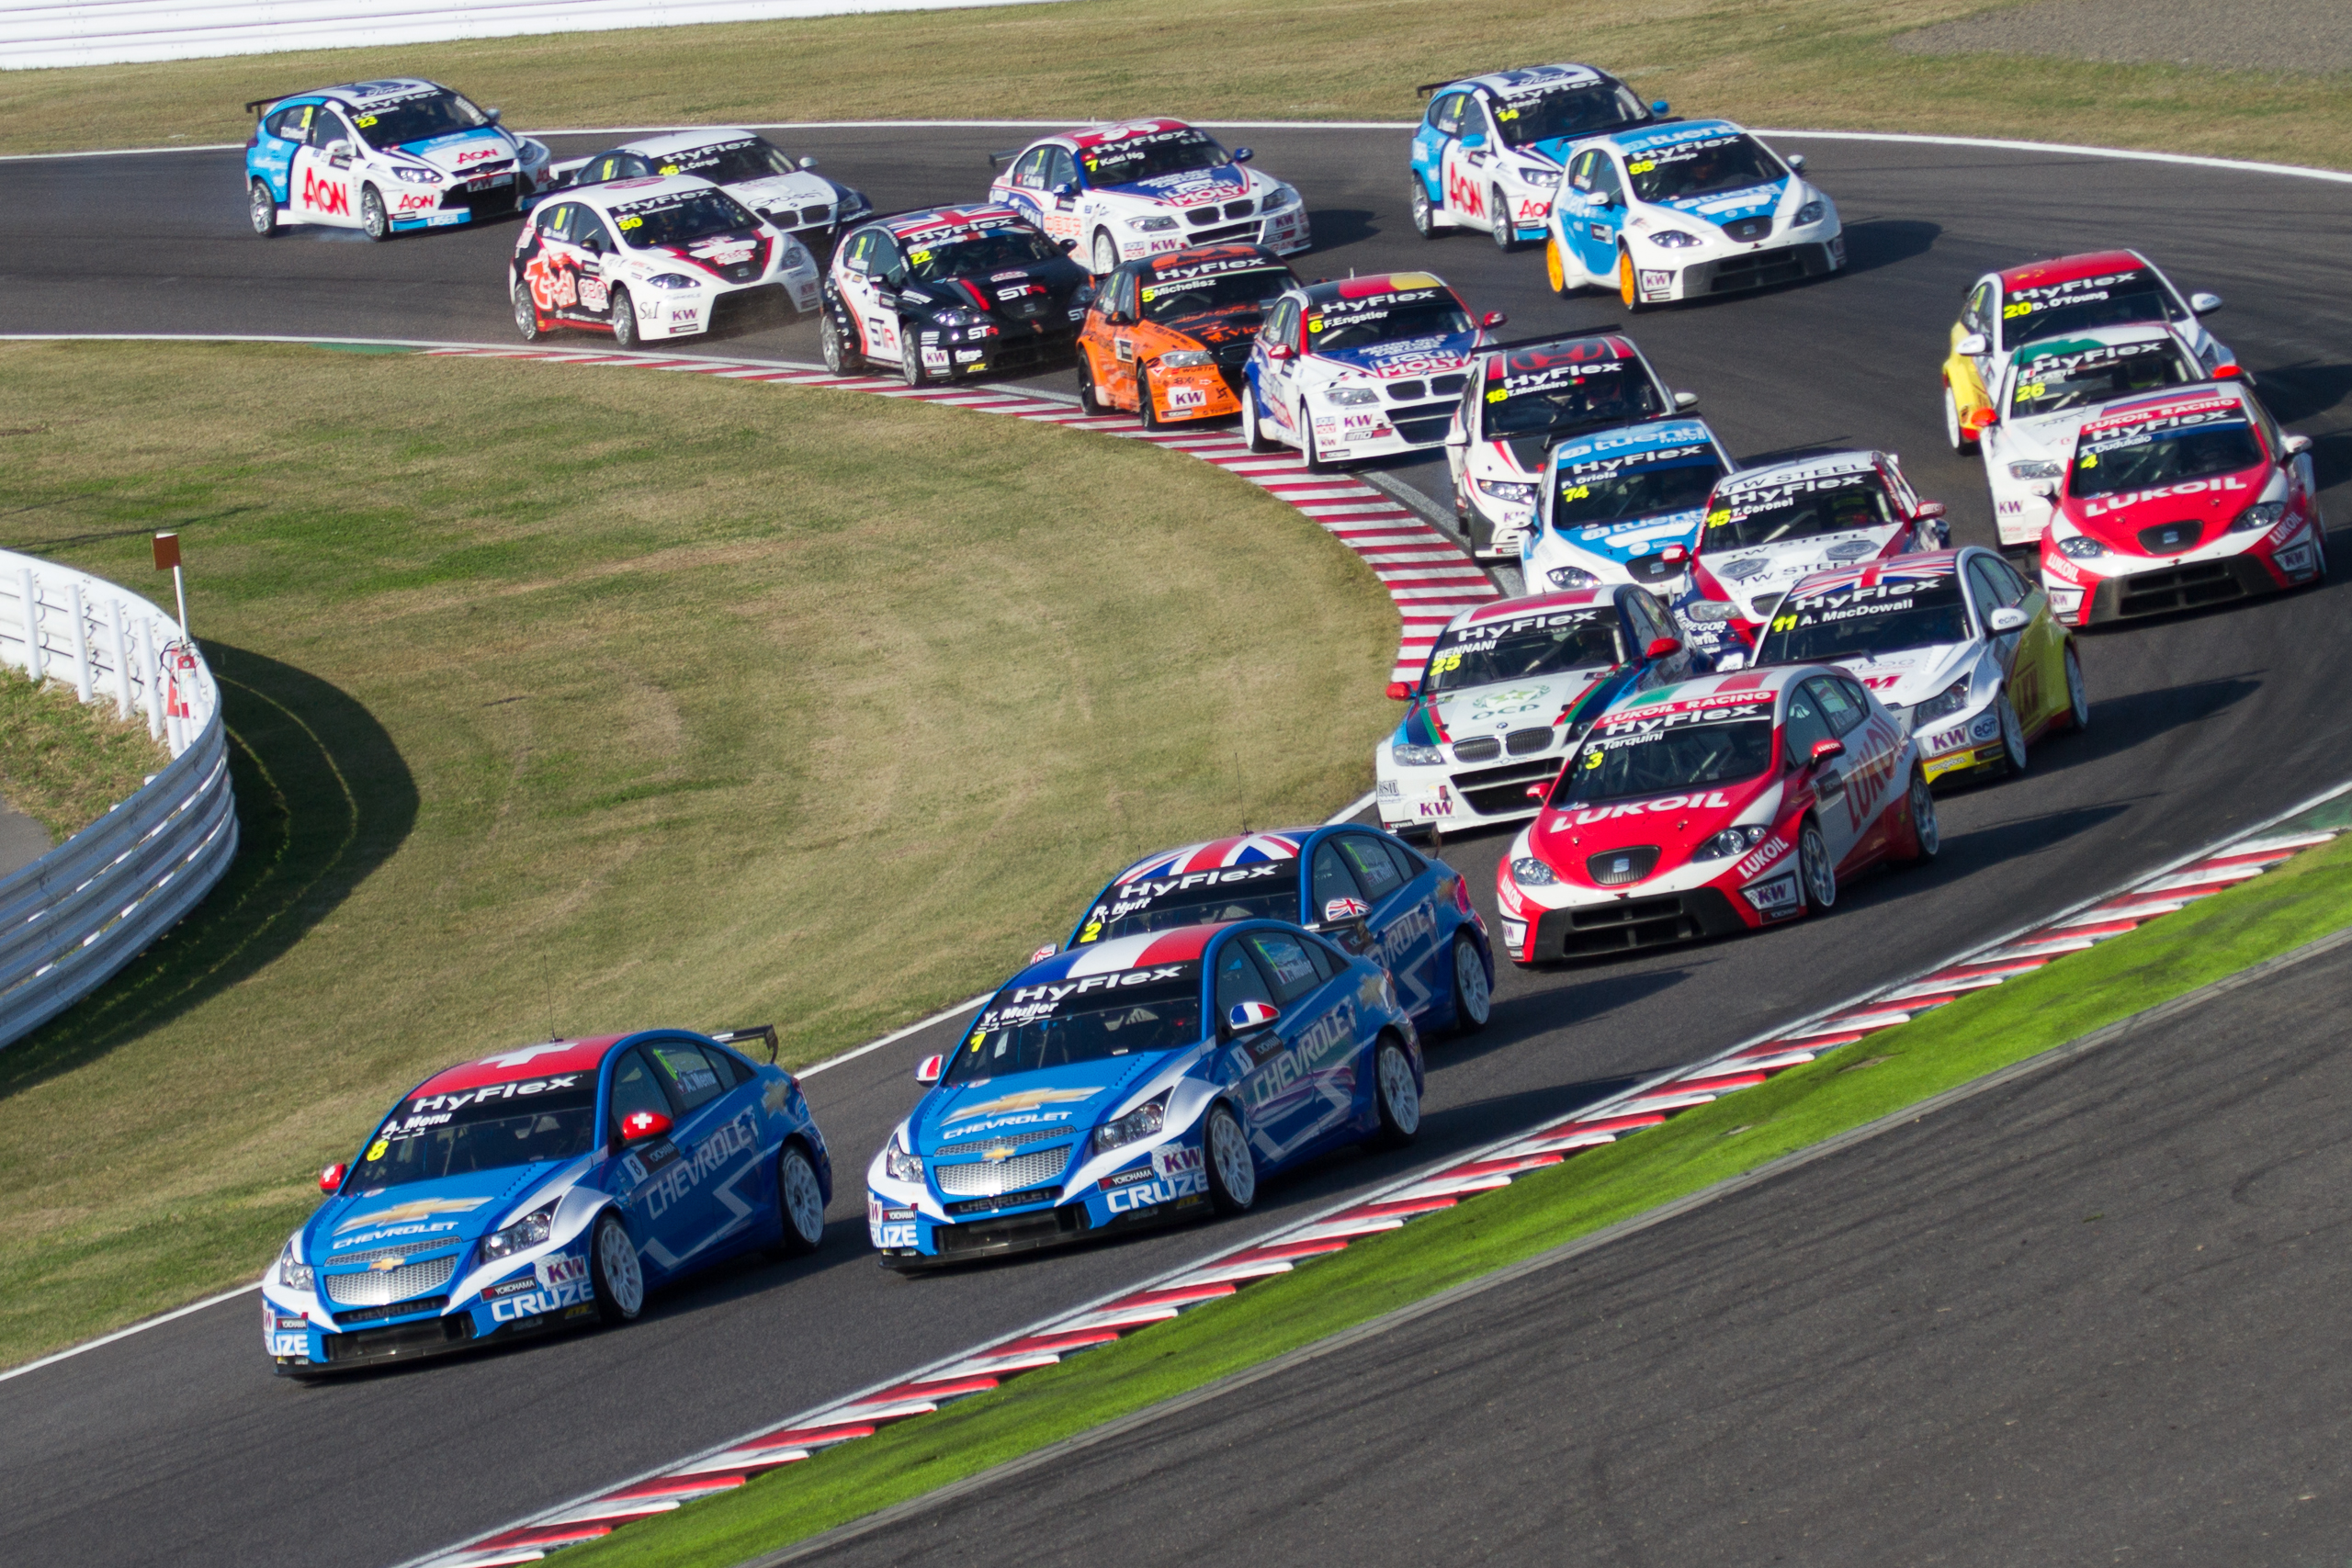 http://upload.wikimedia.org/wikipedia/commons/c/cf/2012_WTCC_Race_of_Japan_(Race_1)_opening_lap.jpg